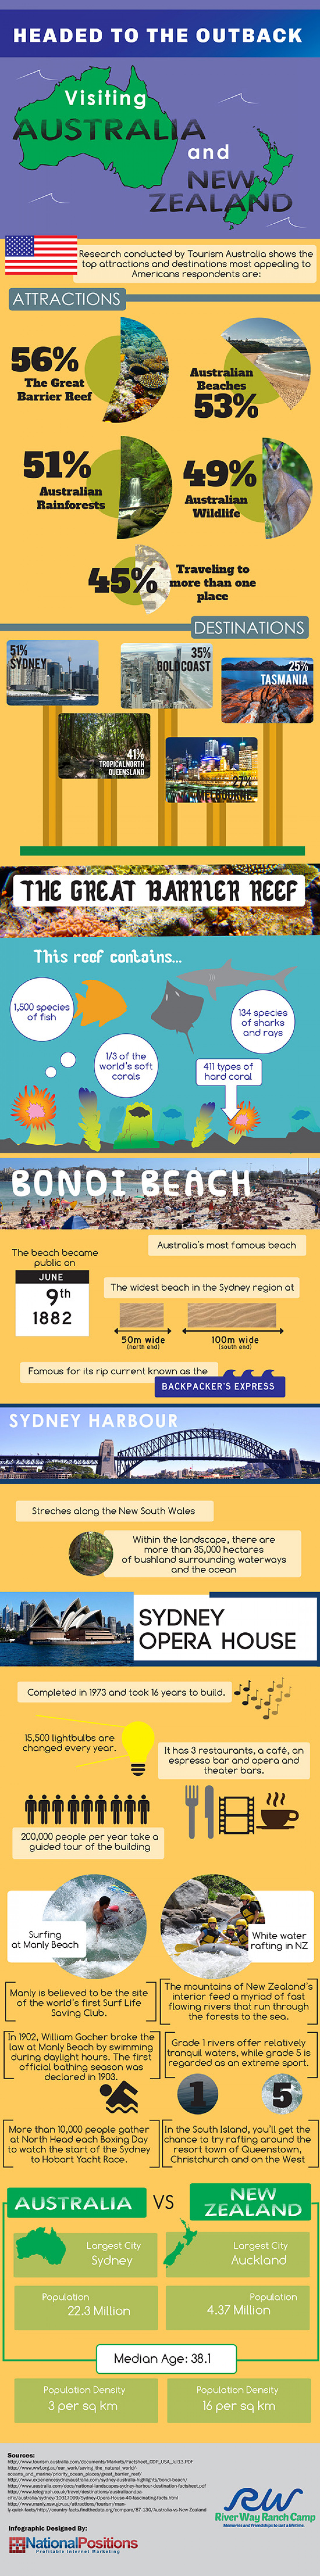 Headed To The Outback: Visiting Australia and New Zealand Infographic